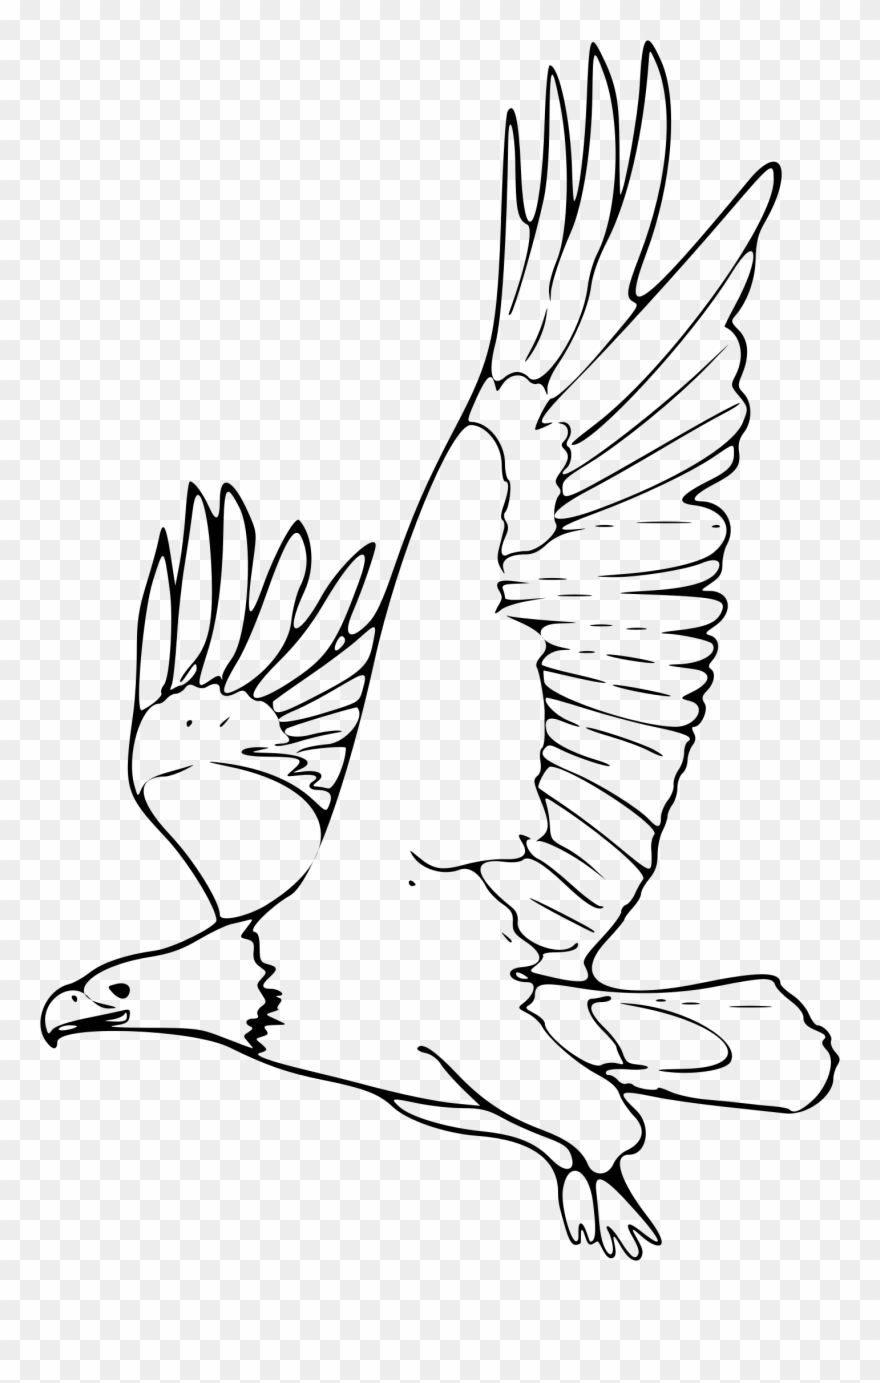 Bald picture of png. Eagle clipart outline